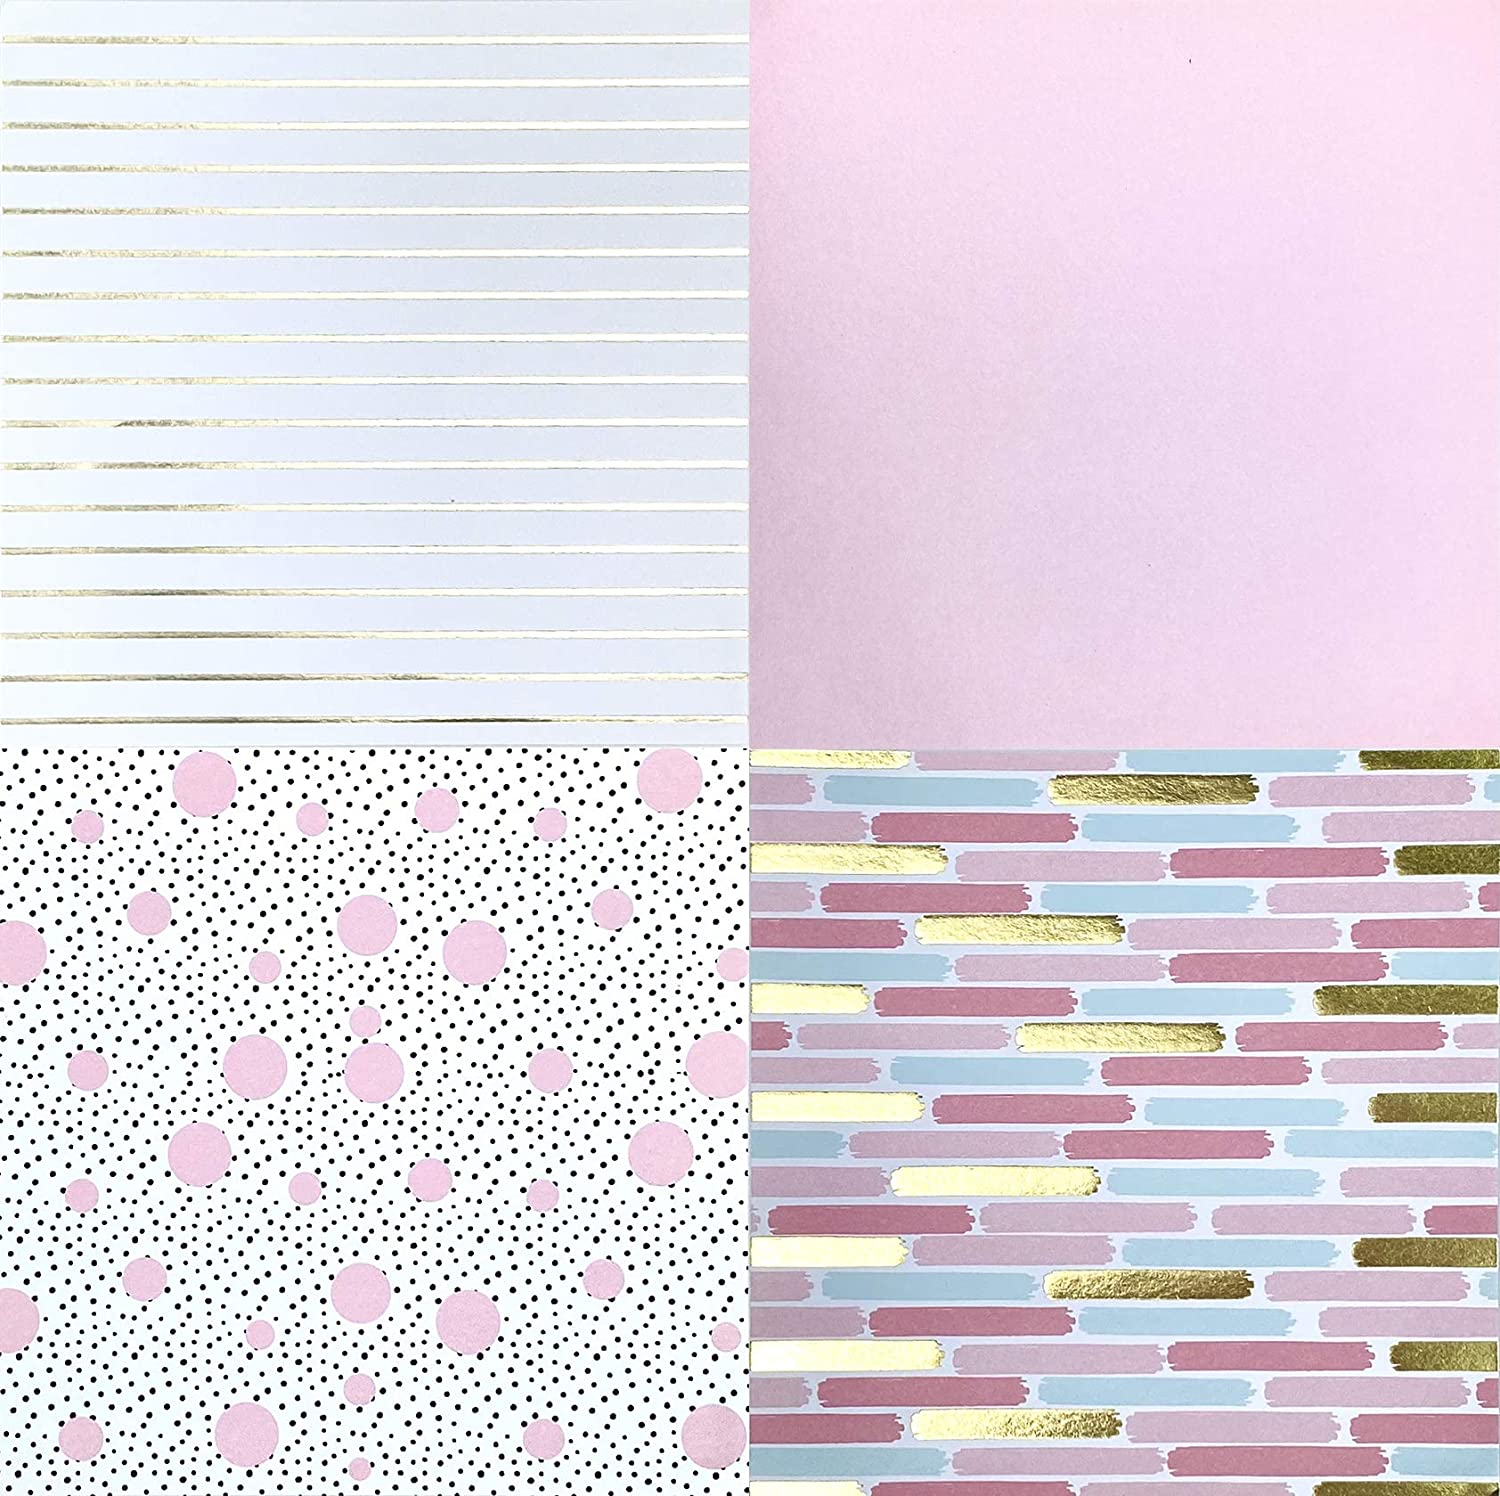 Besecraft Designer Cardstock Paper Pad for Crafting for Origami Paper Pads Scrapbooking Decorative Gift Wrapping 8 Designs 24 Sheets Decopage Book Covers 5.9x5.9 inches Multi-Colored and Foil